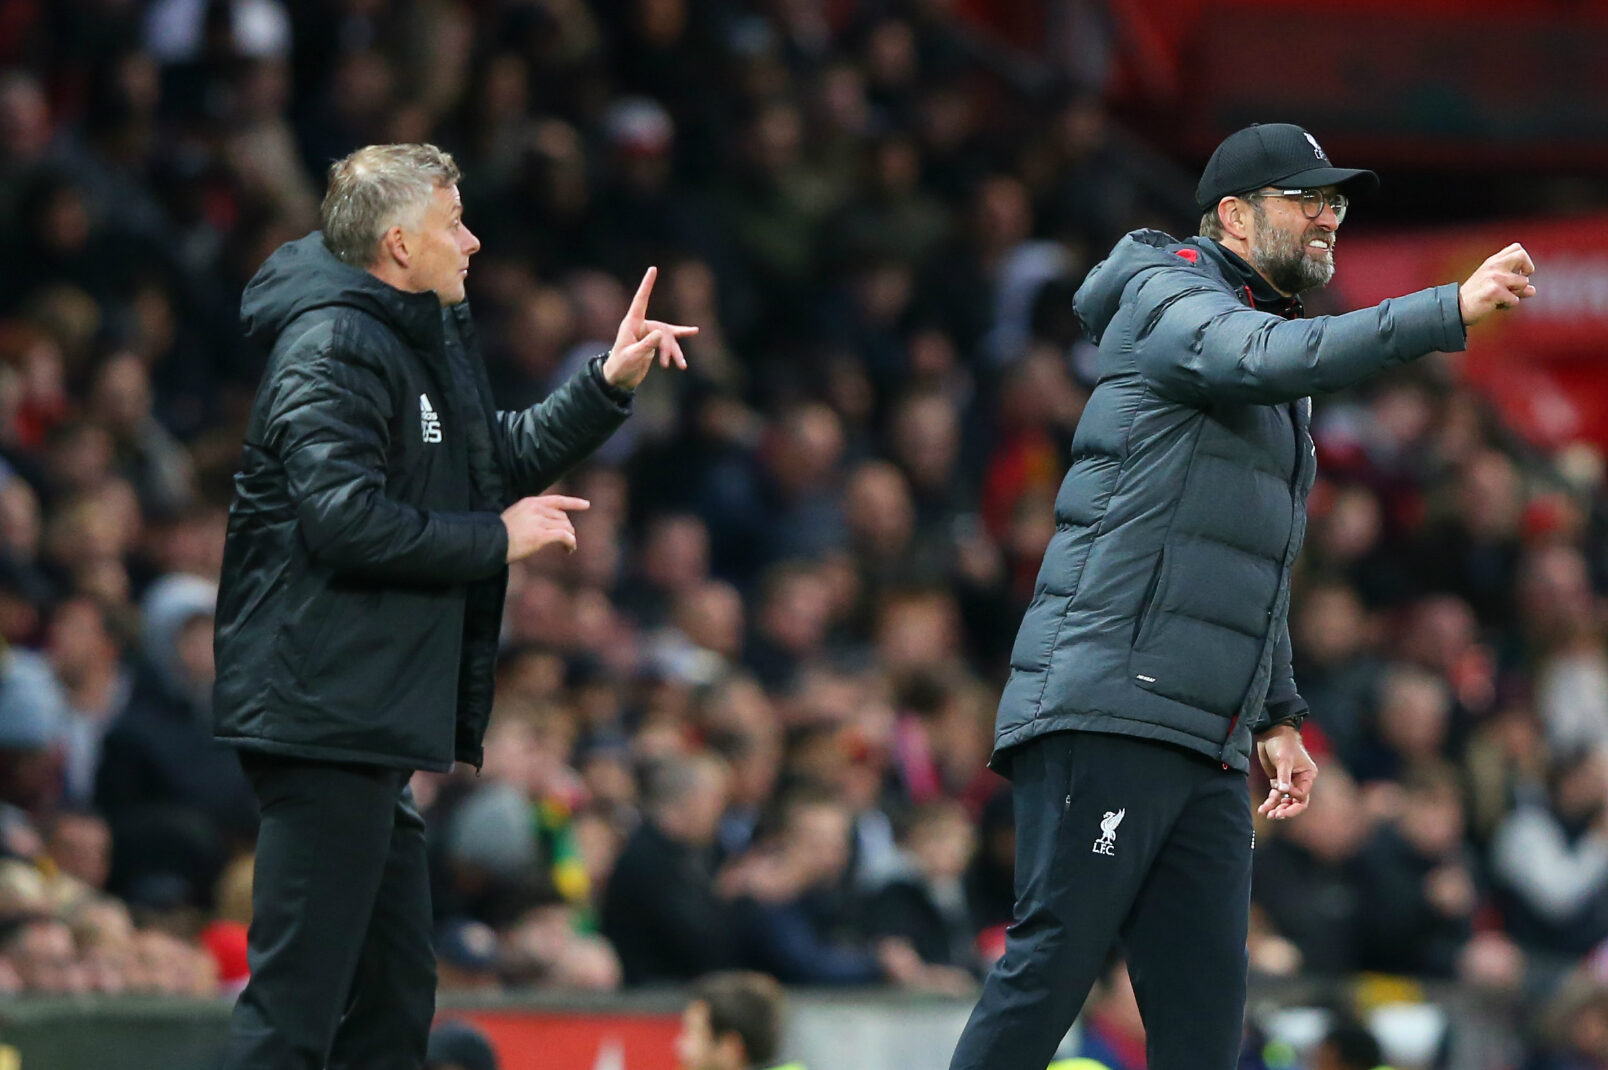 FA Cup draw: Manchester United sets up dual meeting with Liverpool